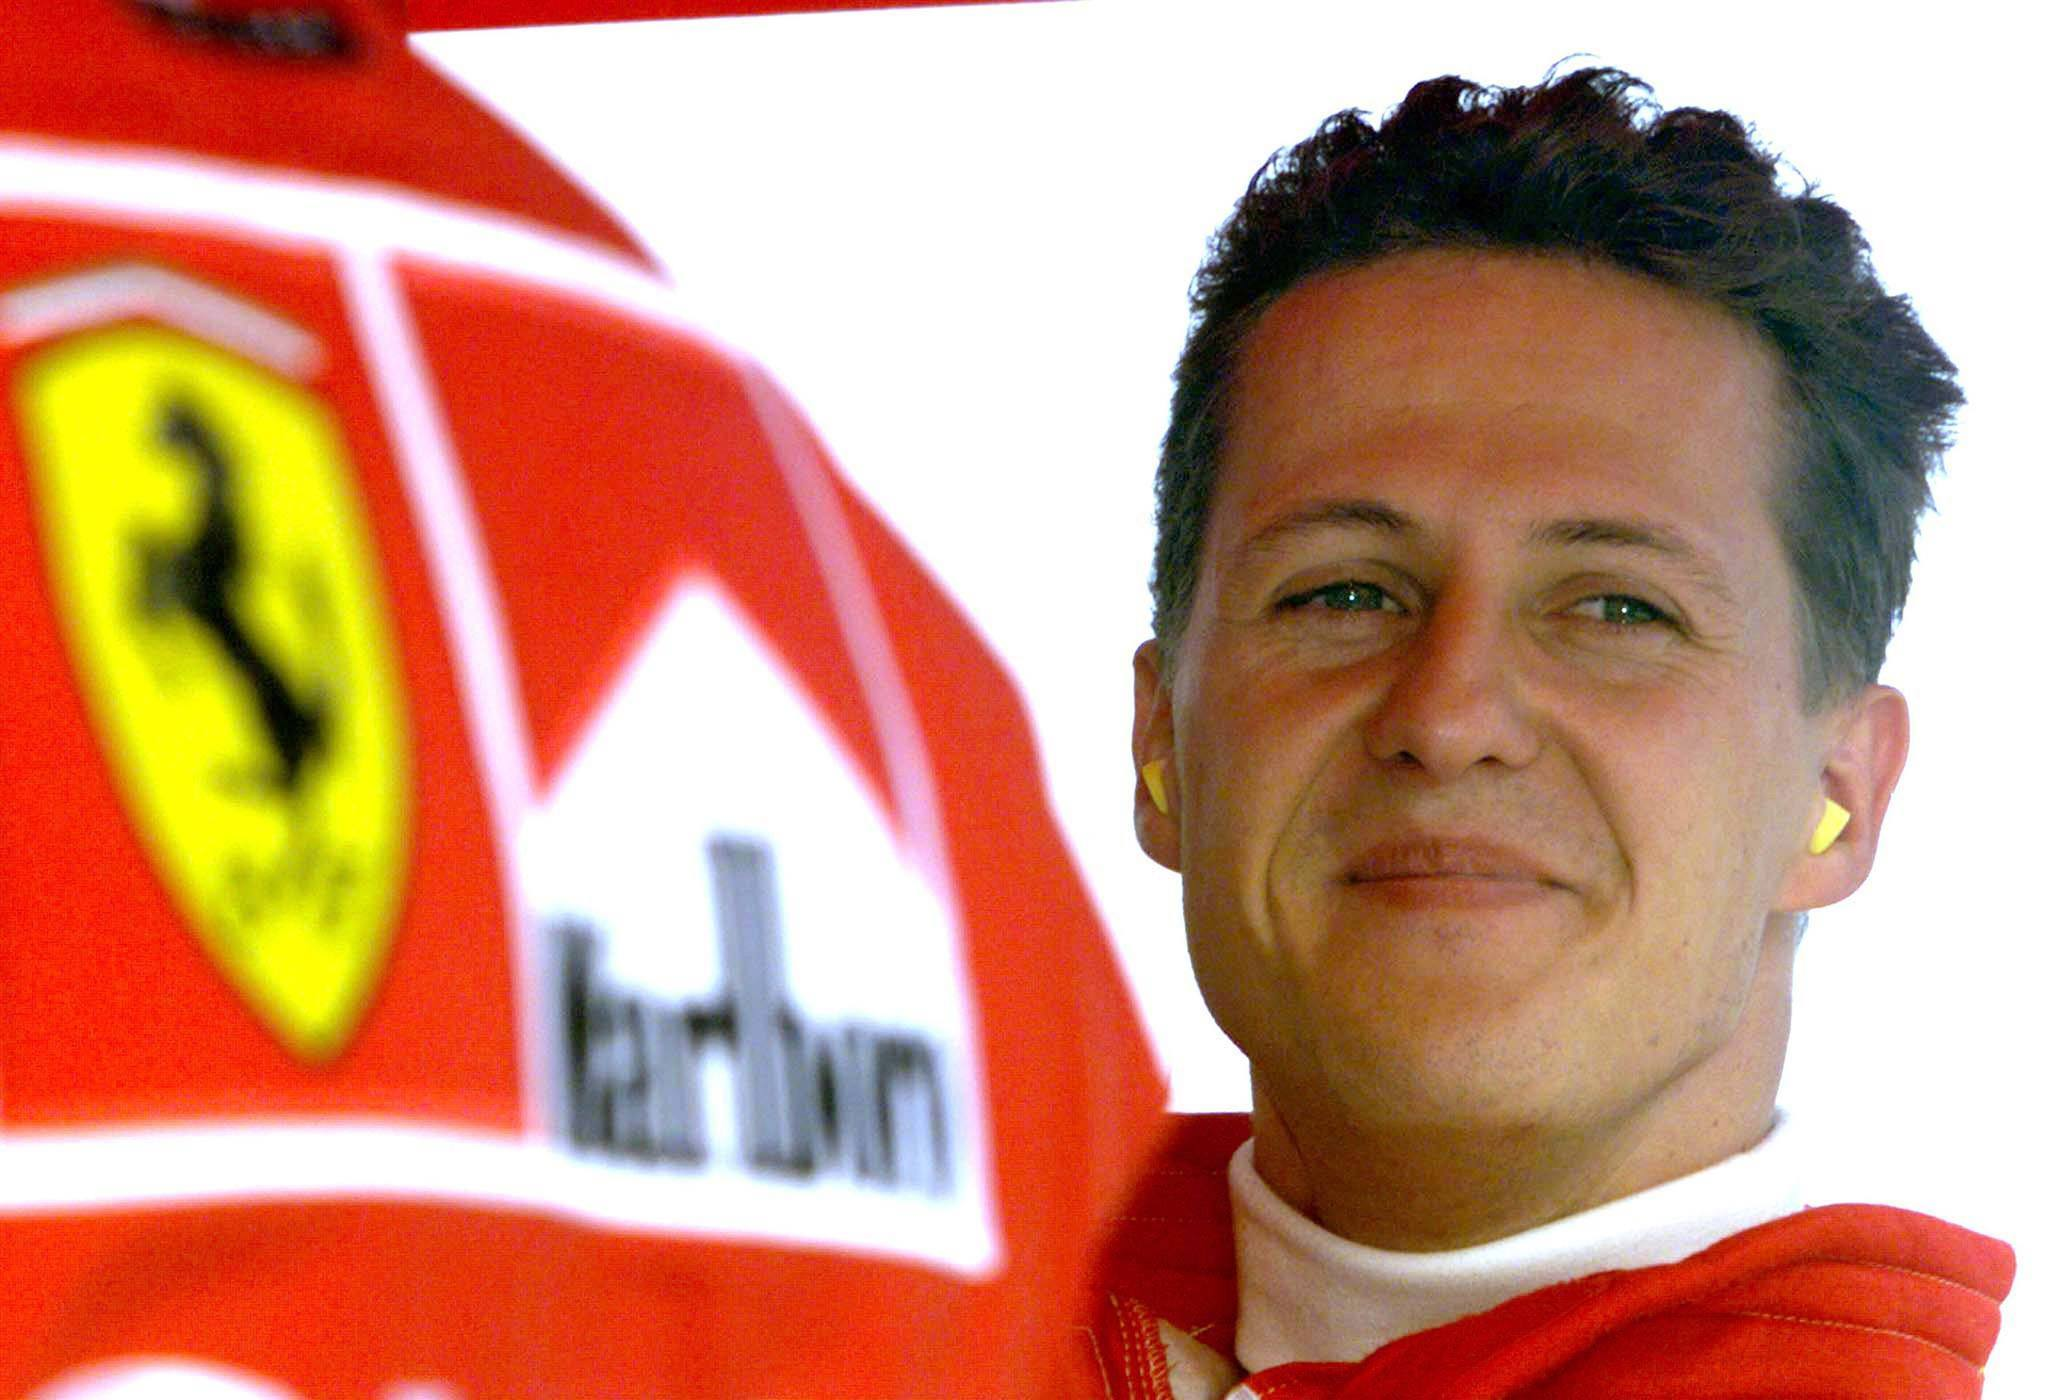 Germany's Michael Schumacher smiles in the pit area after completing his second qualifying session of the Hungarian Formula One Grand Prix in this August 15, 1998 file photo. Ferrari fans held a vigil for Michael Schumacher on his 45th birthday on January 3, 2014, gathering outside the French hospital where the seven times world champion continued to fight for his life after a skiing accident. Schumacher's family thanked the fans in a statement on Friday evening saying they were moved to tears while French media reported that investigators were studying a camera the German had on him at the time of the accident.